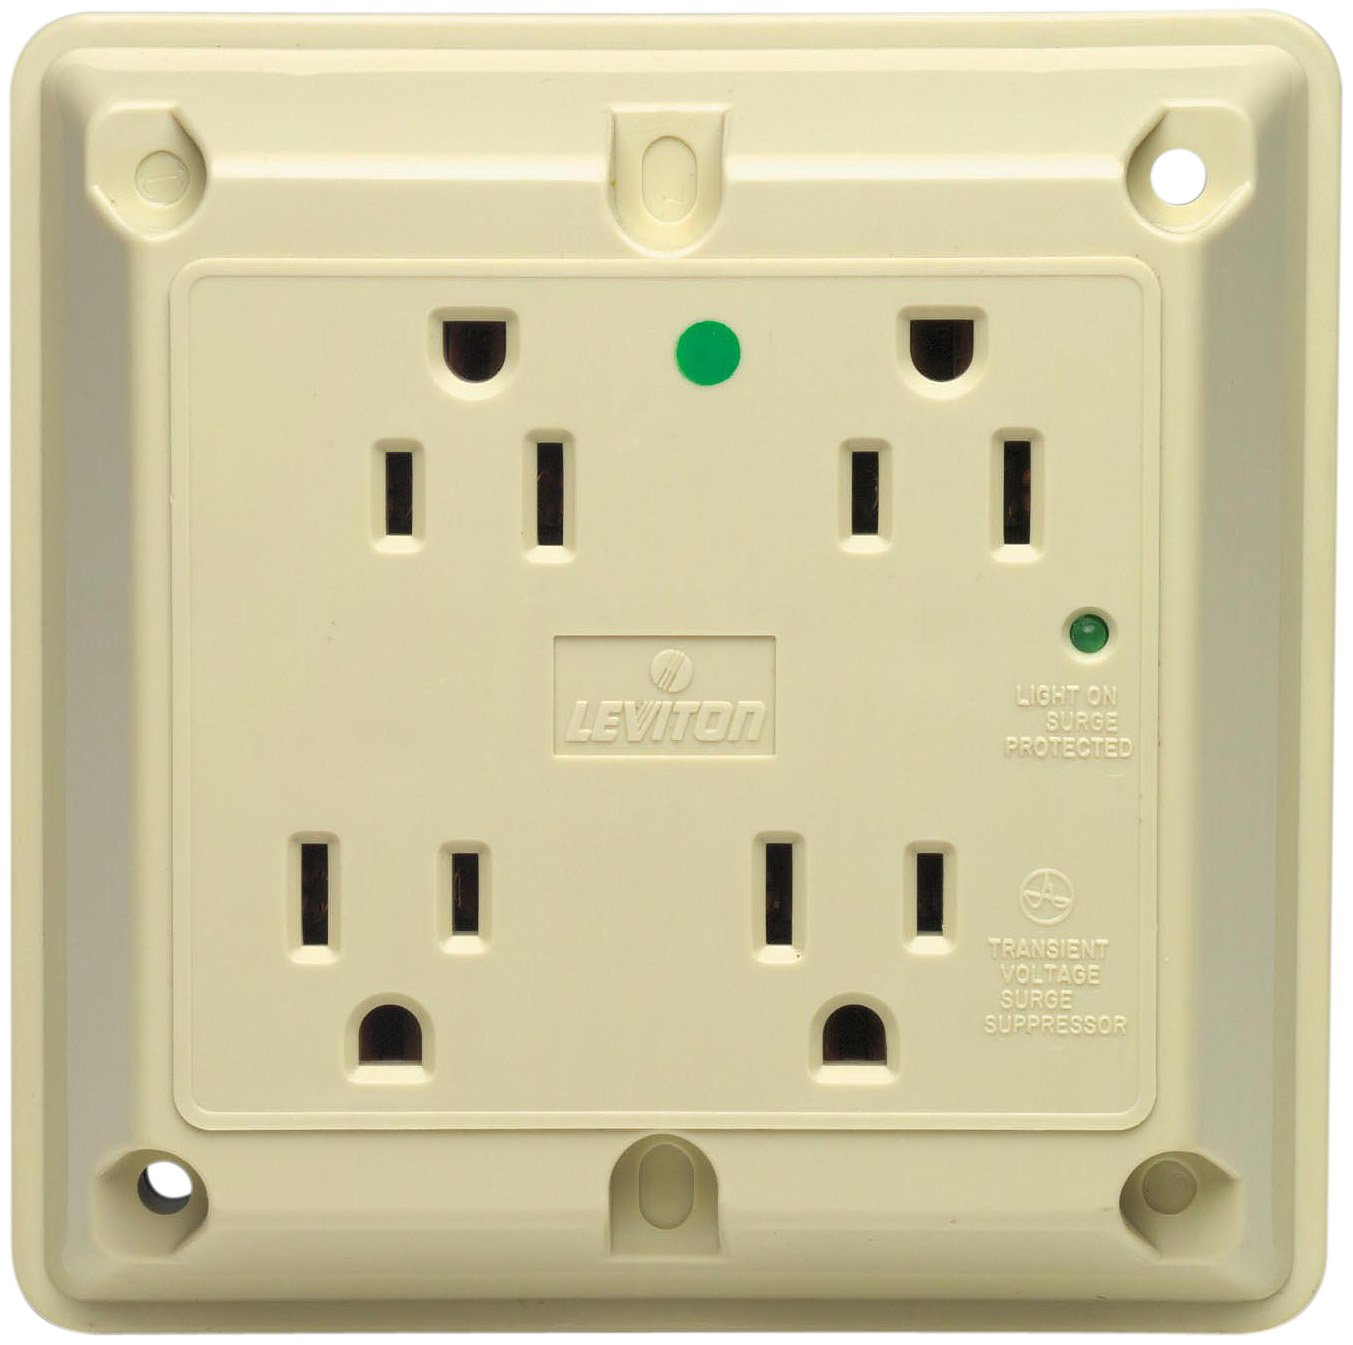 Leviton 8480-I 15 Amp, 125 Volt, 4-In-1 Receptacle, Straight Blade, Industrial Series Extra Heavy Duty Hospital Grade, Grounding, Surge with Indicator Light, Ivory